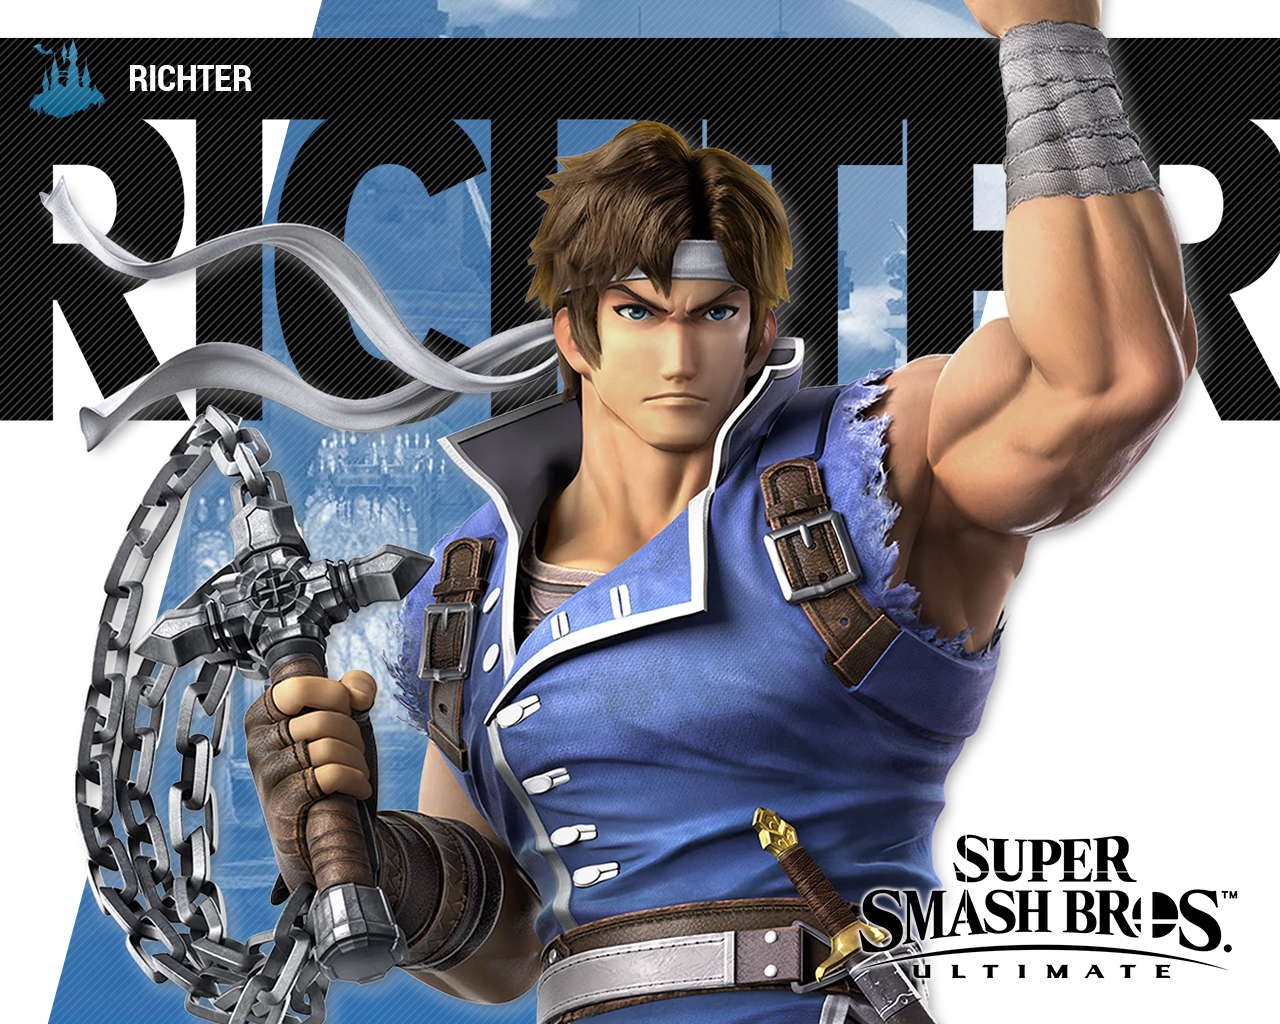 Super Smash Bros Ultimate Richter Wallpapers Cat With